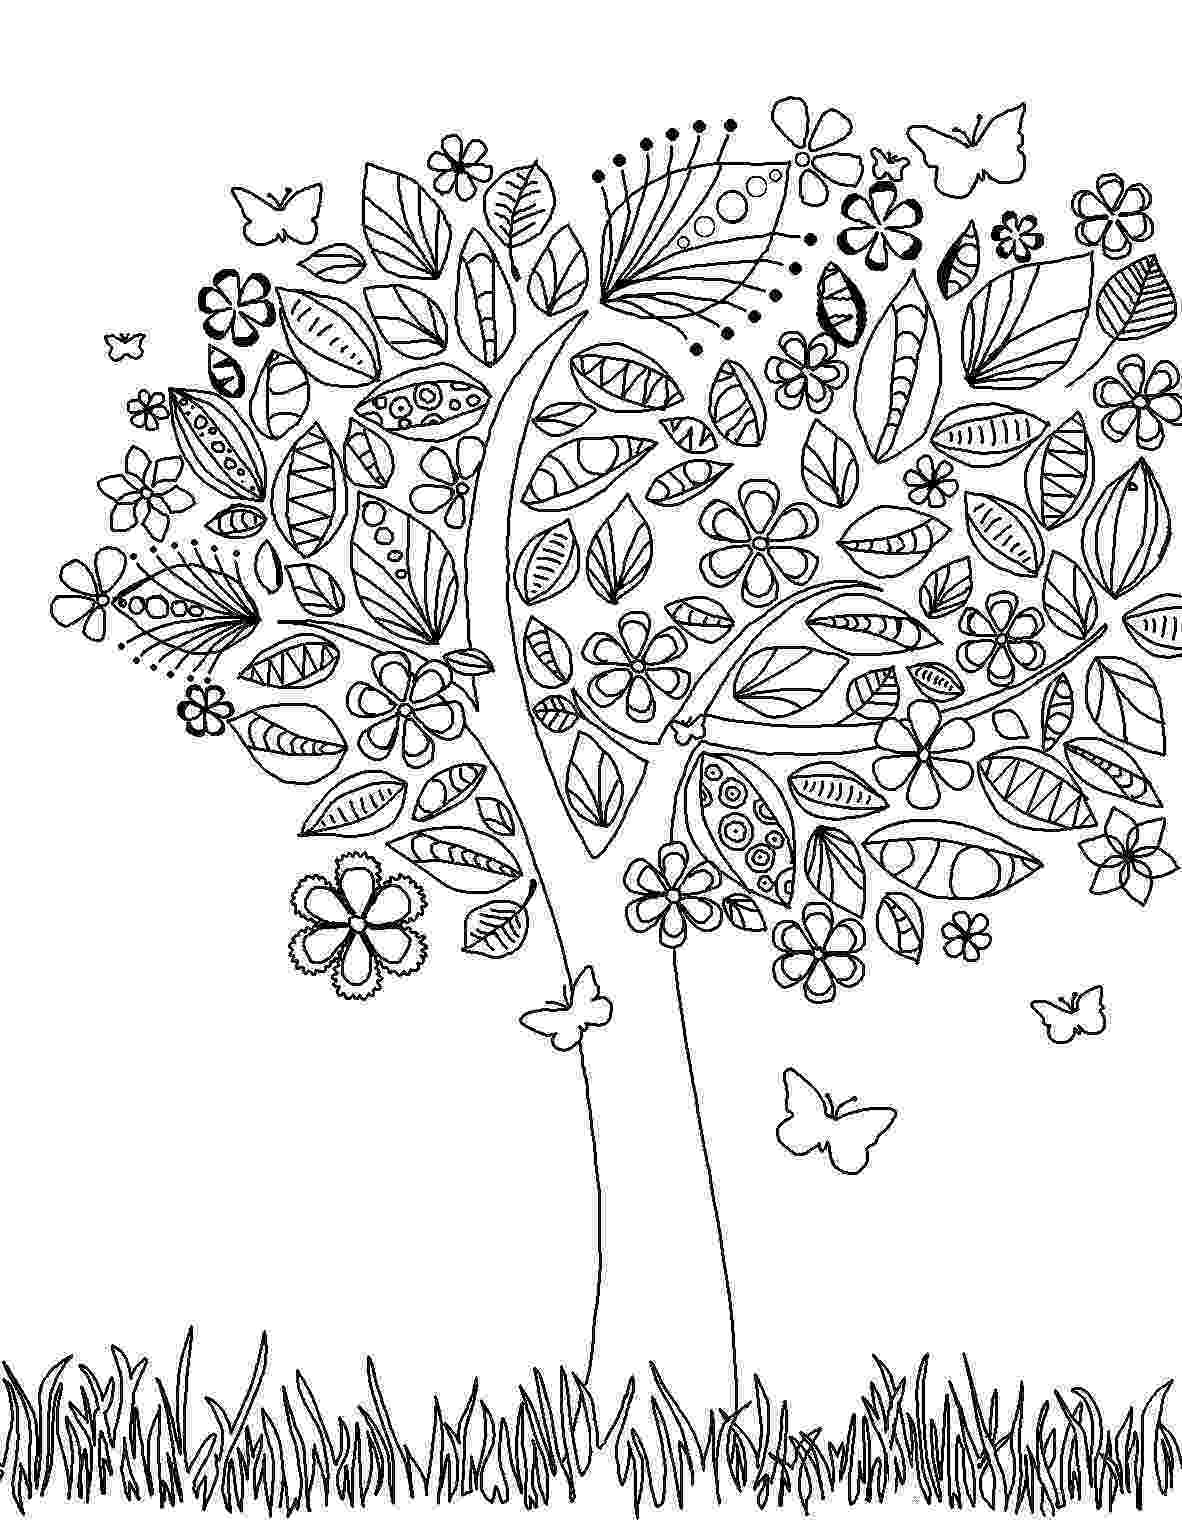 flower coloring patterns flower pattern coloring pages at getdrawings free download coloring patterns flower